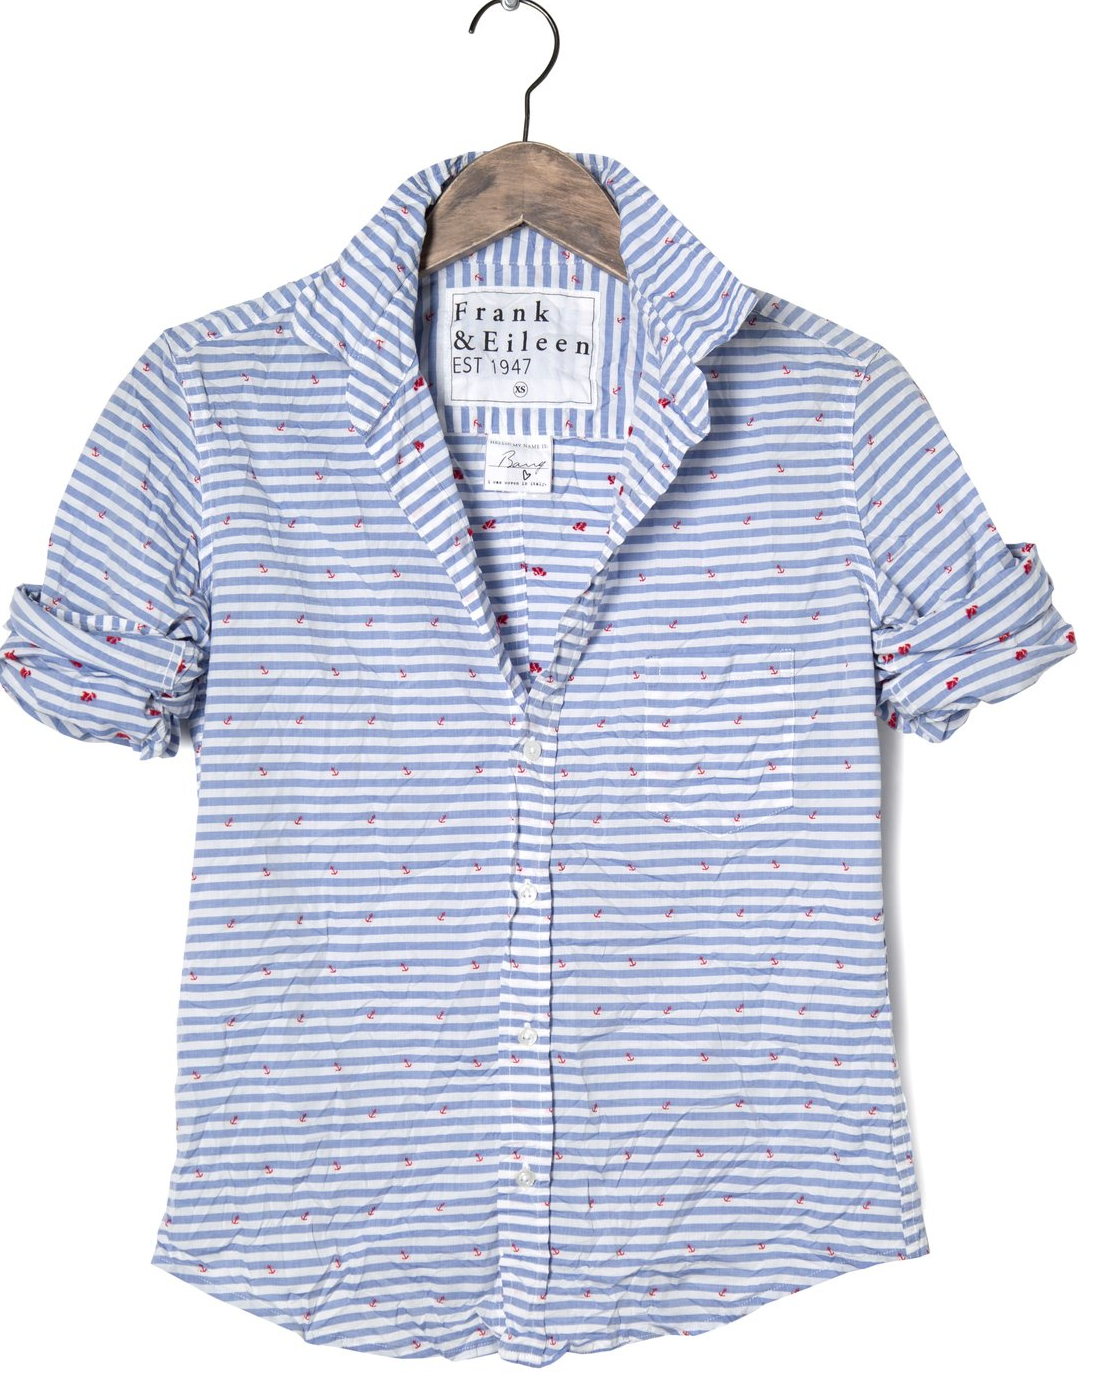 Frank & Eileen - BLUE HORIZONTAL STRIPE WITH RED ANCHOR, ITALIAN POPLIN